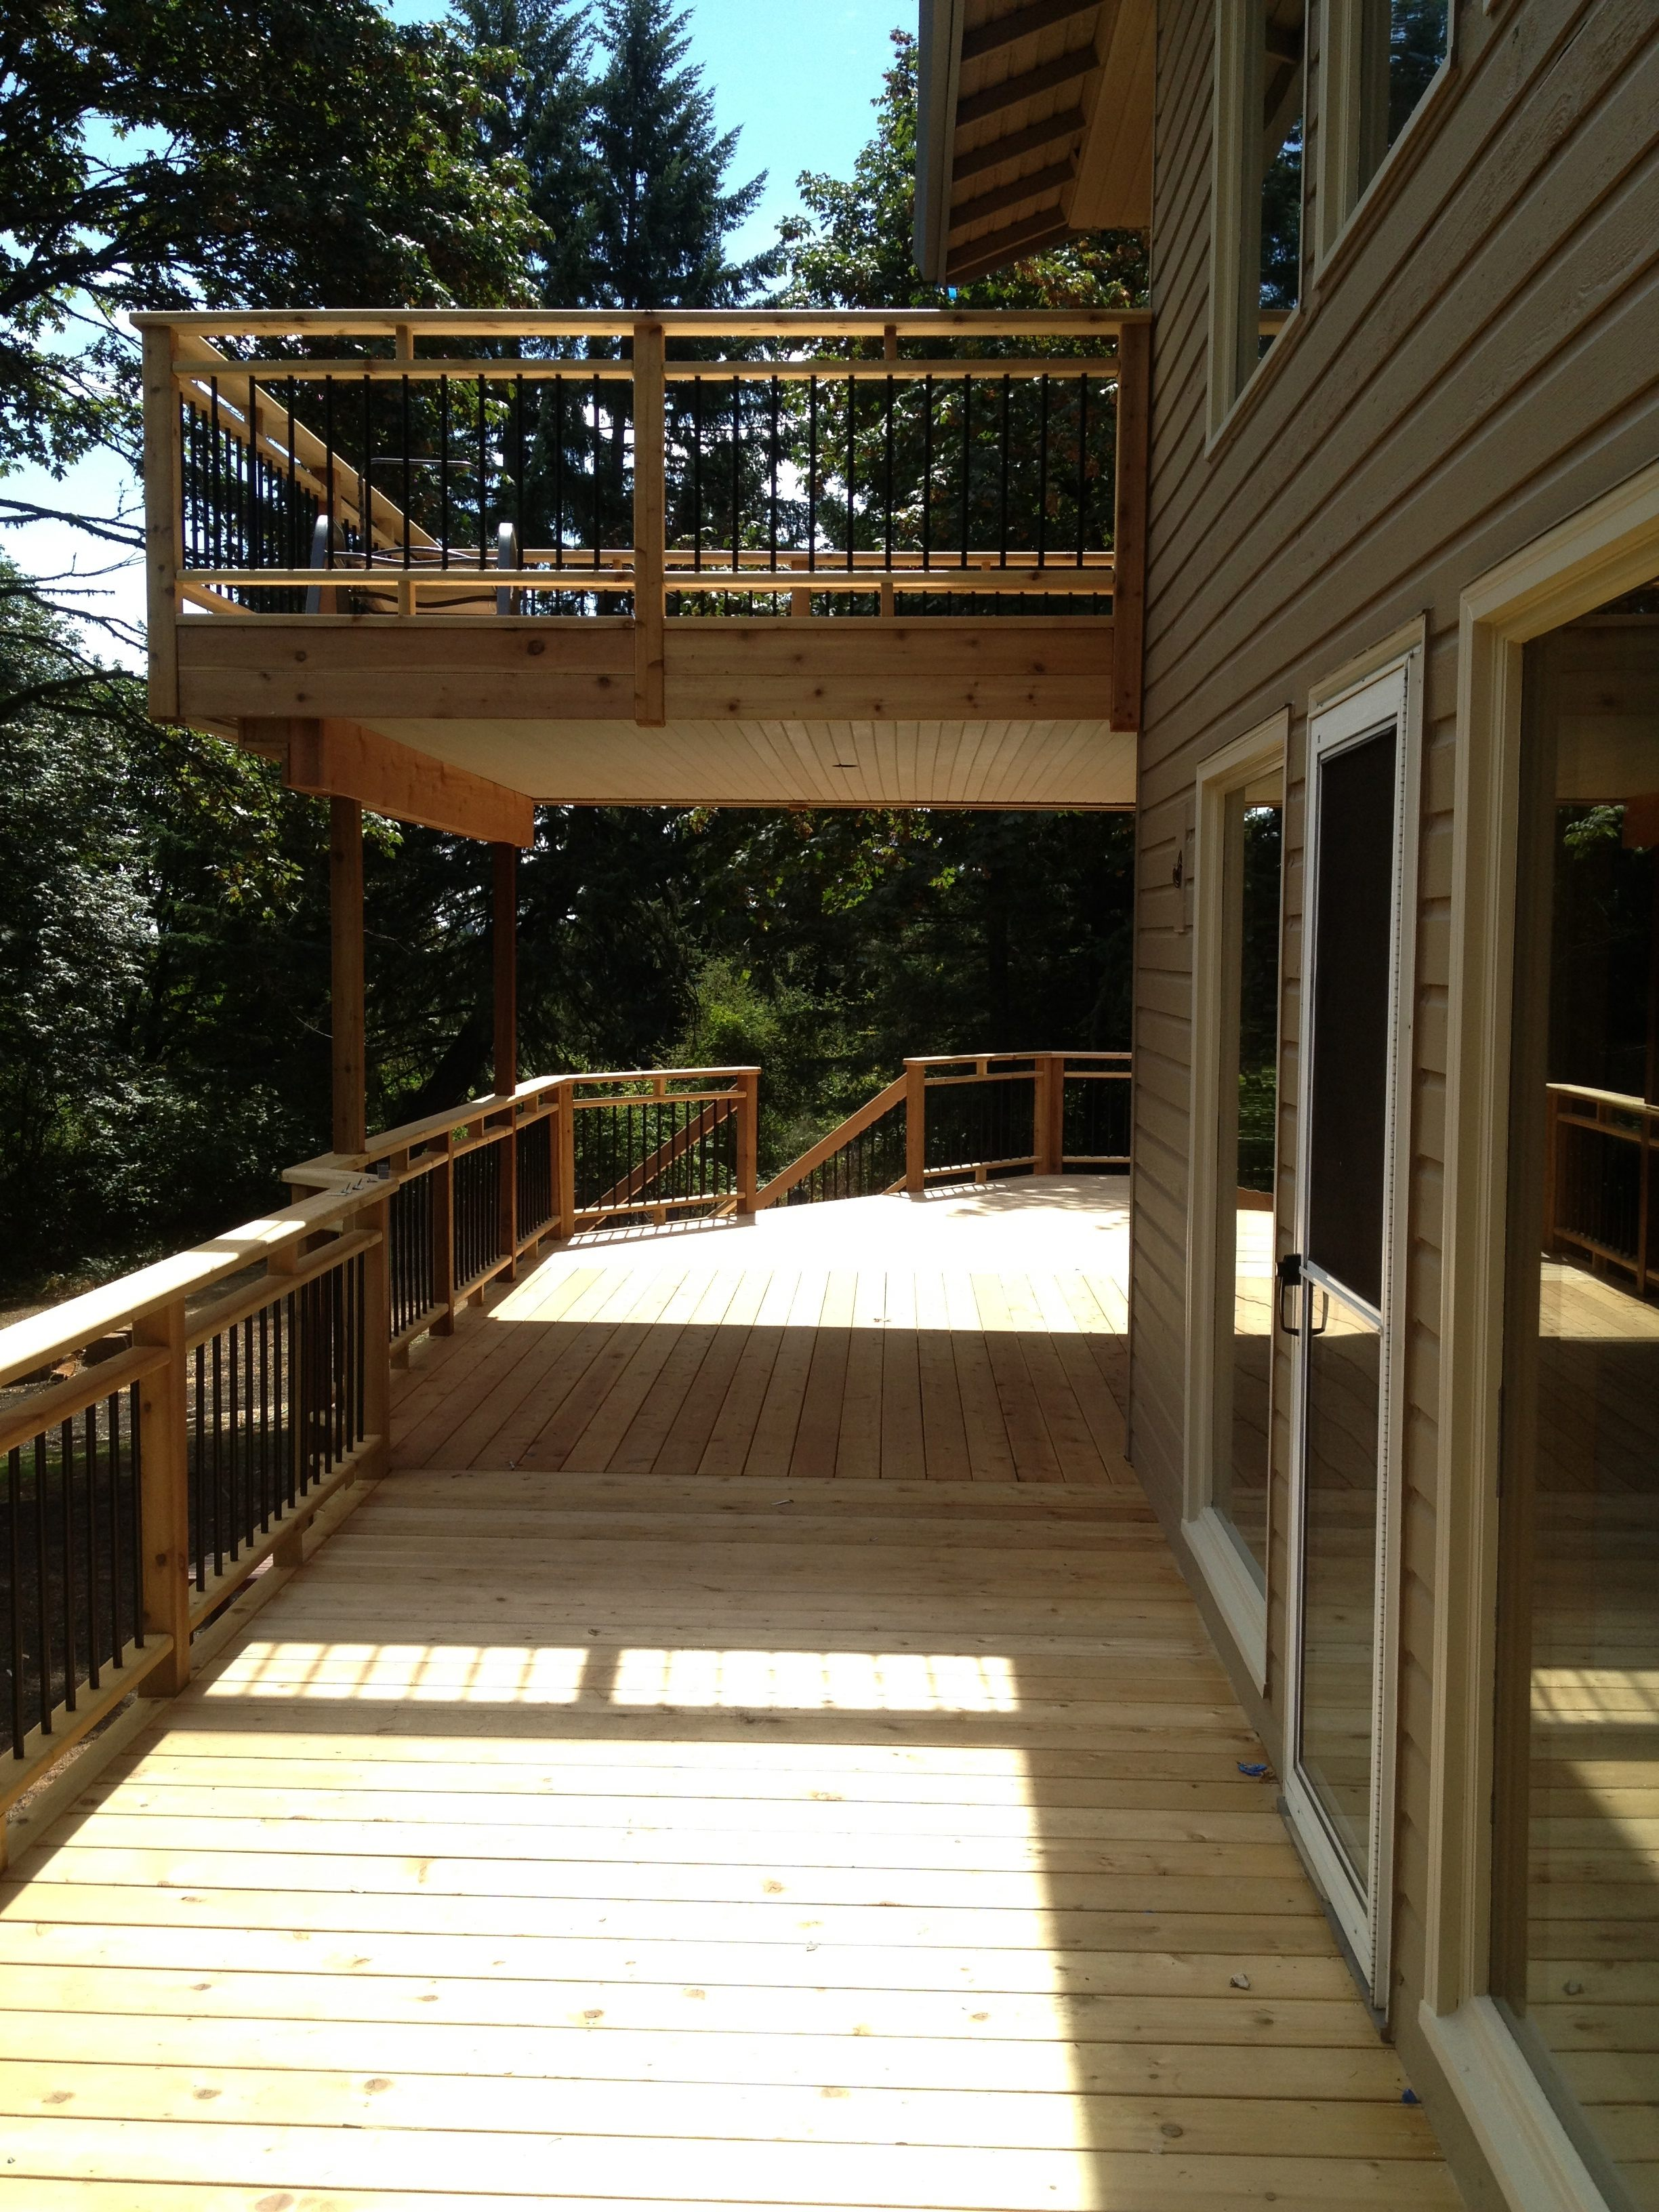 Deck Waterproofing Membrane : Cedar deck and balcony with waterproof membrane for lower